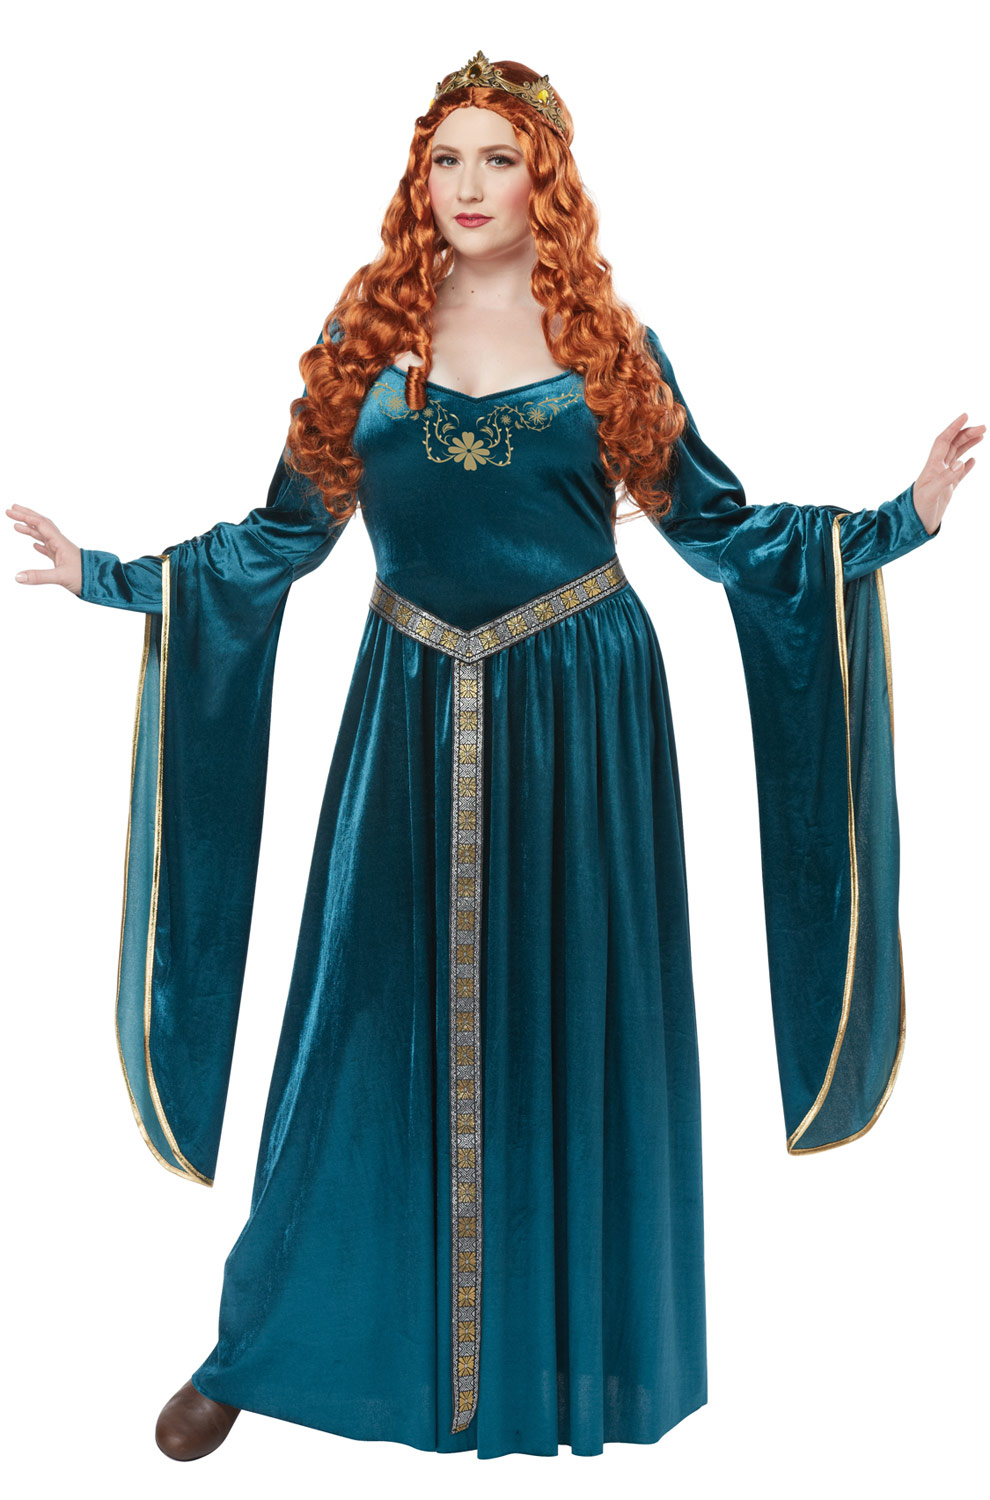 lady guinevere plus size costume (teal) - purecostumes